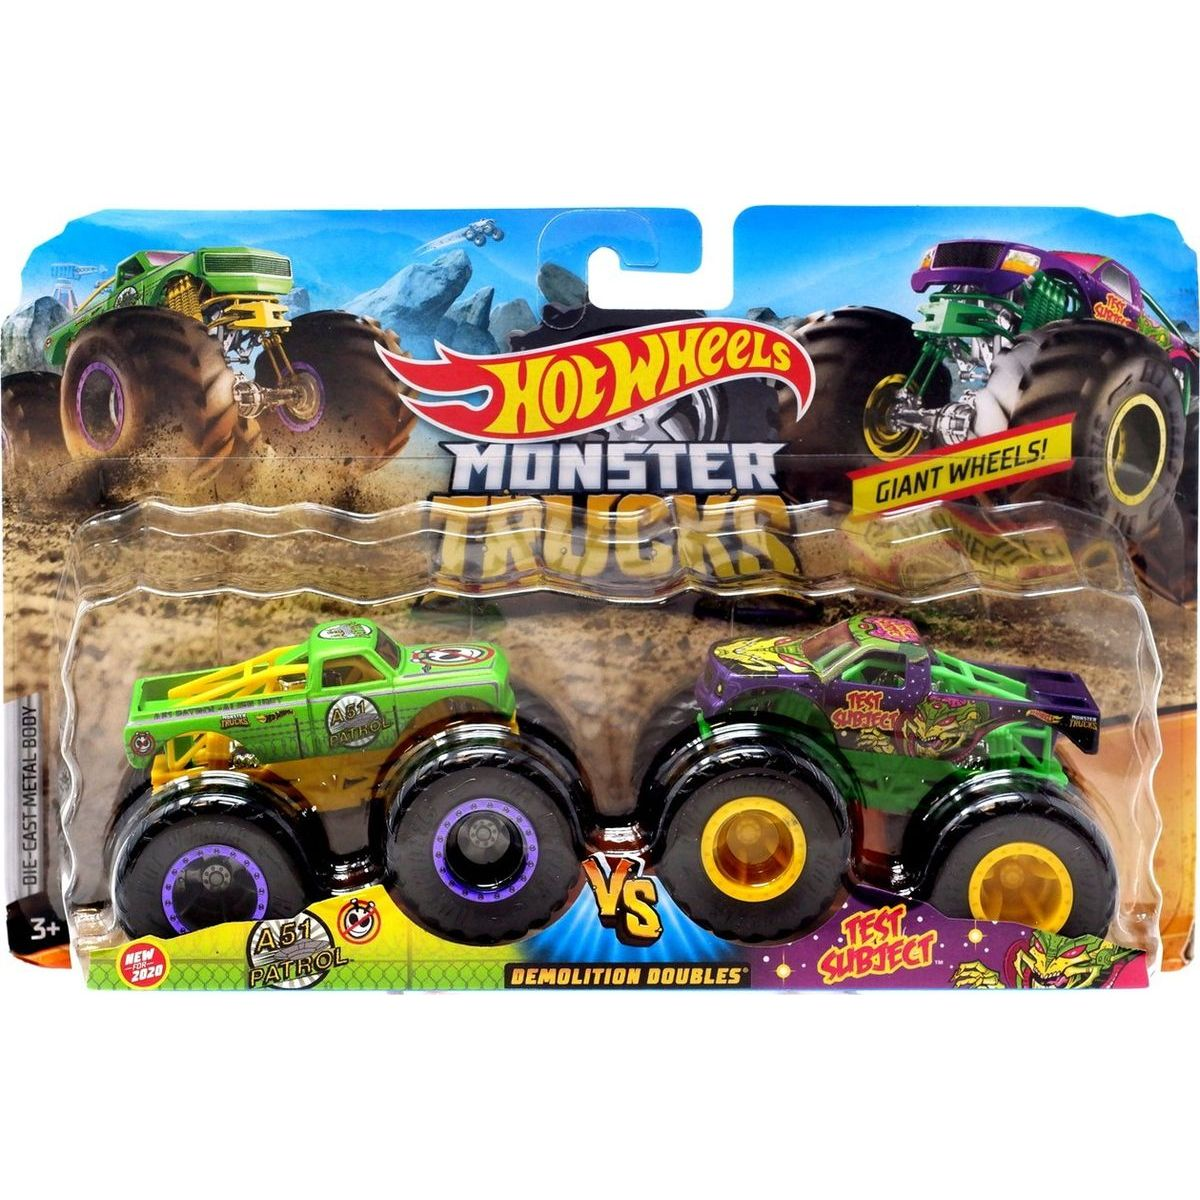 Mattel Hot Wheels Monster trucks demoliční duo A51 Pathol a Test Subject